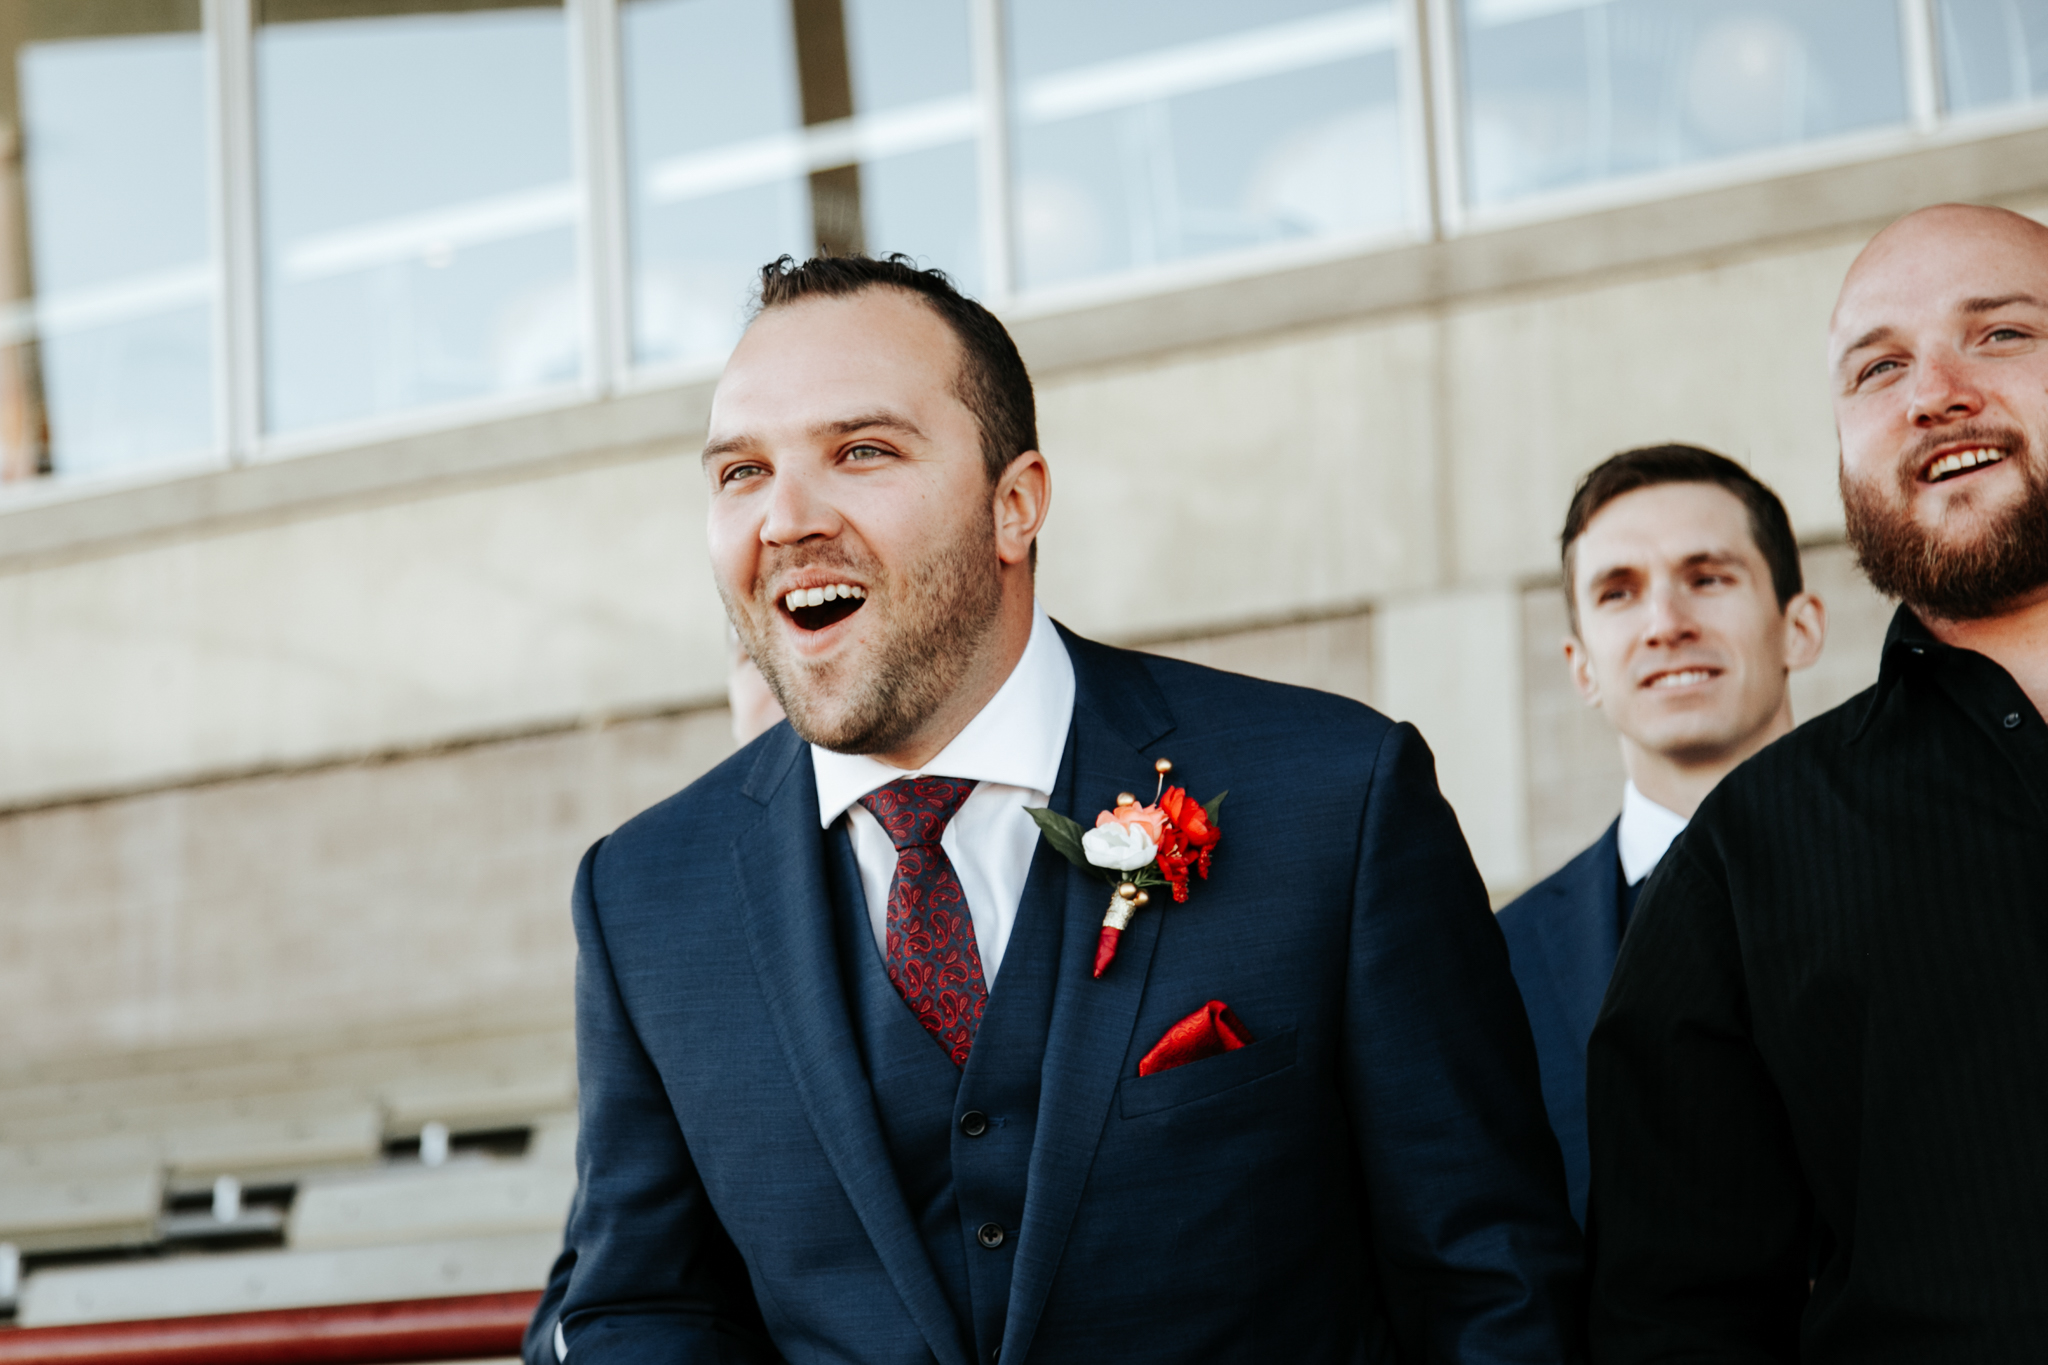 lethbridge-wedding-photographer-love-and-be-loved-photography-groom-prep-photo-image-picture-26.jpg